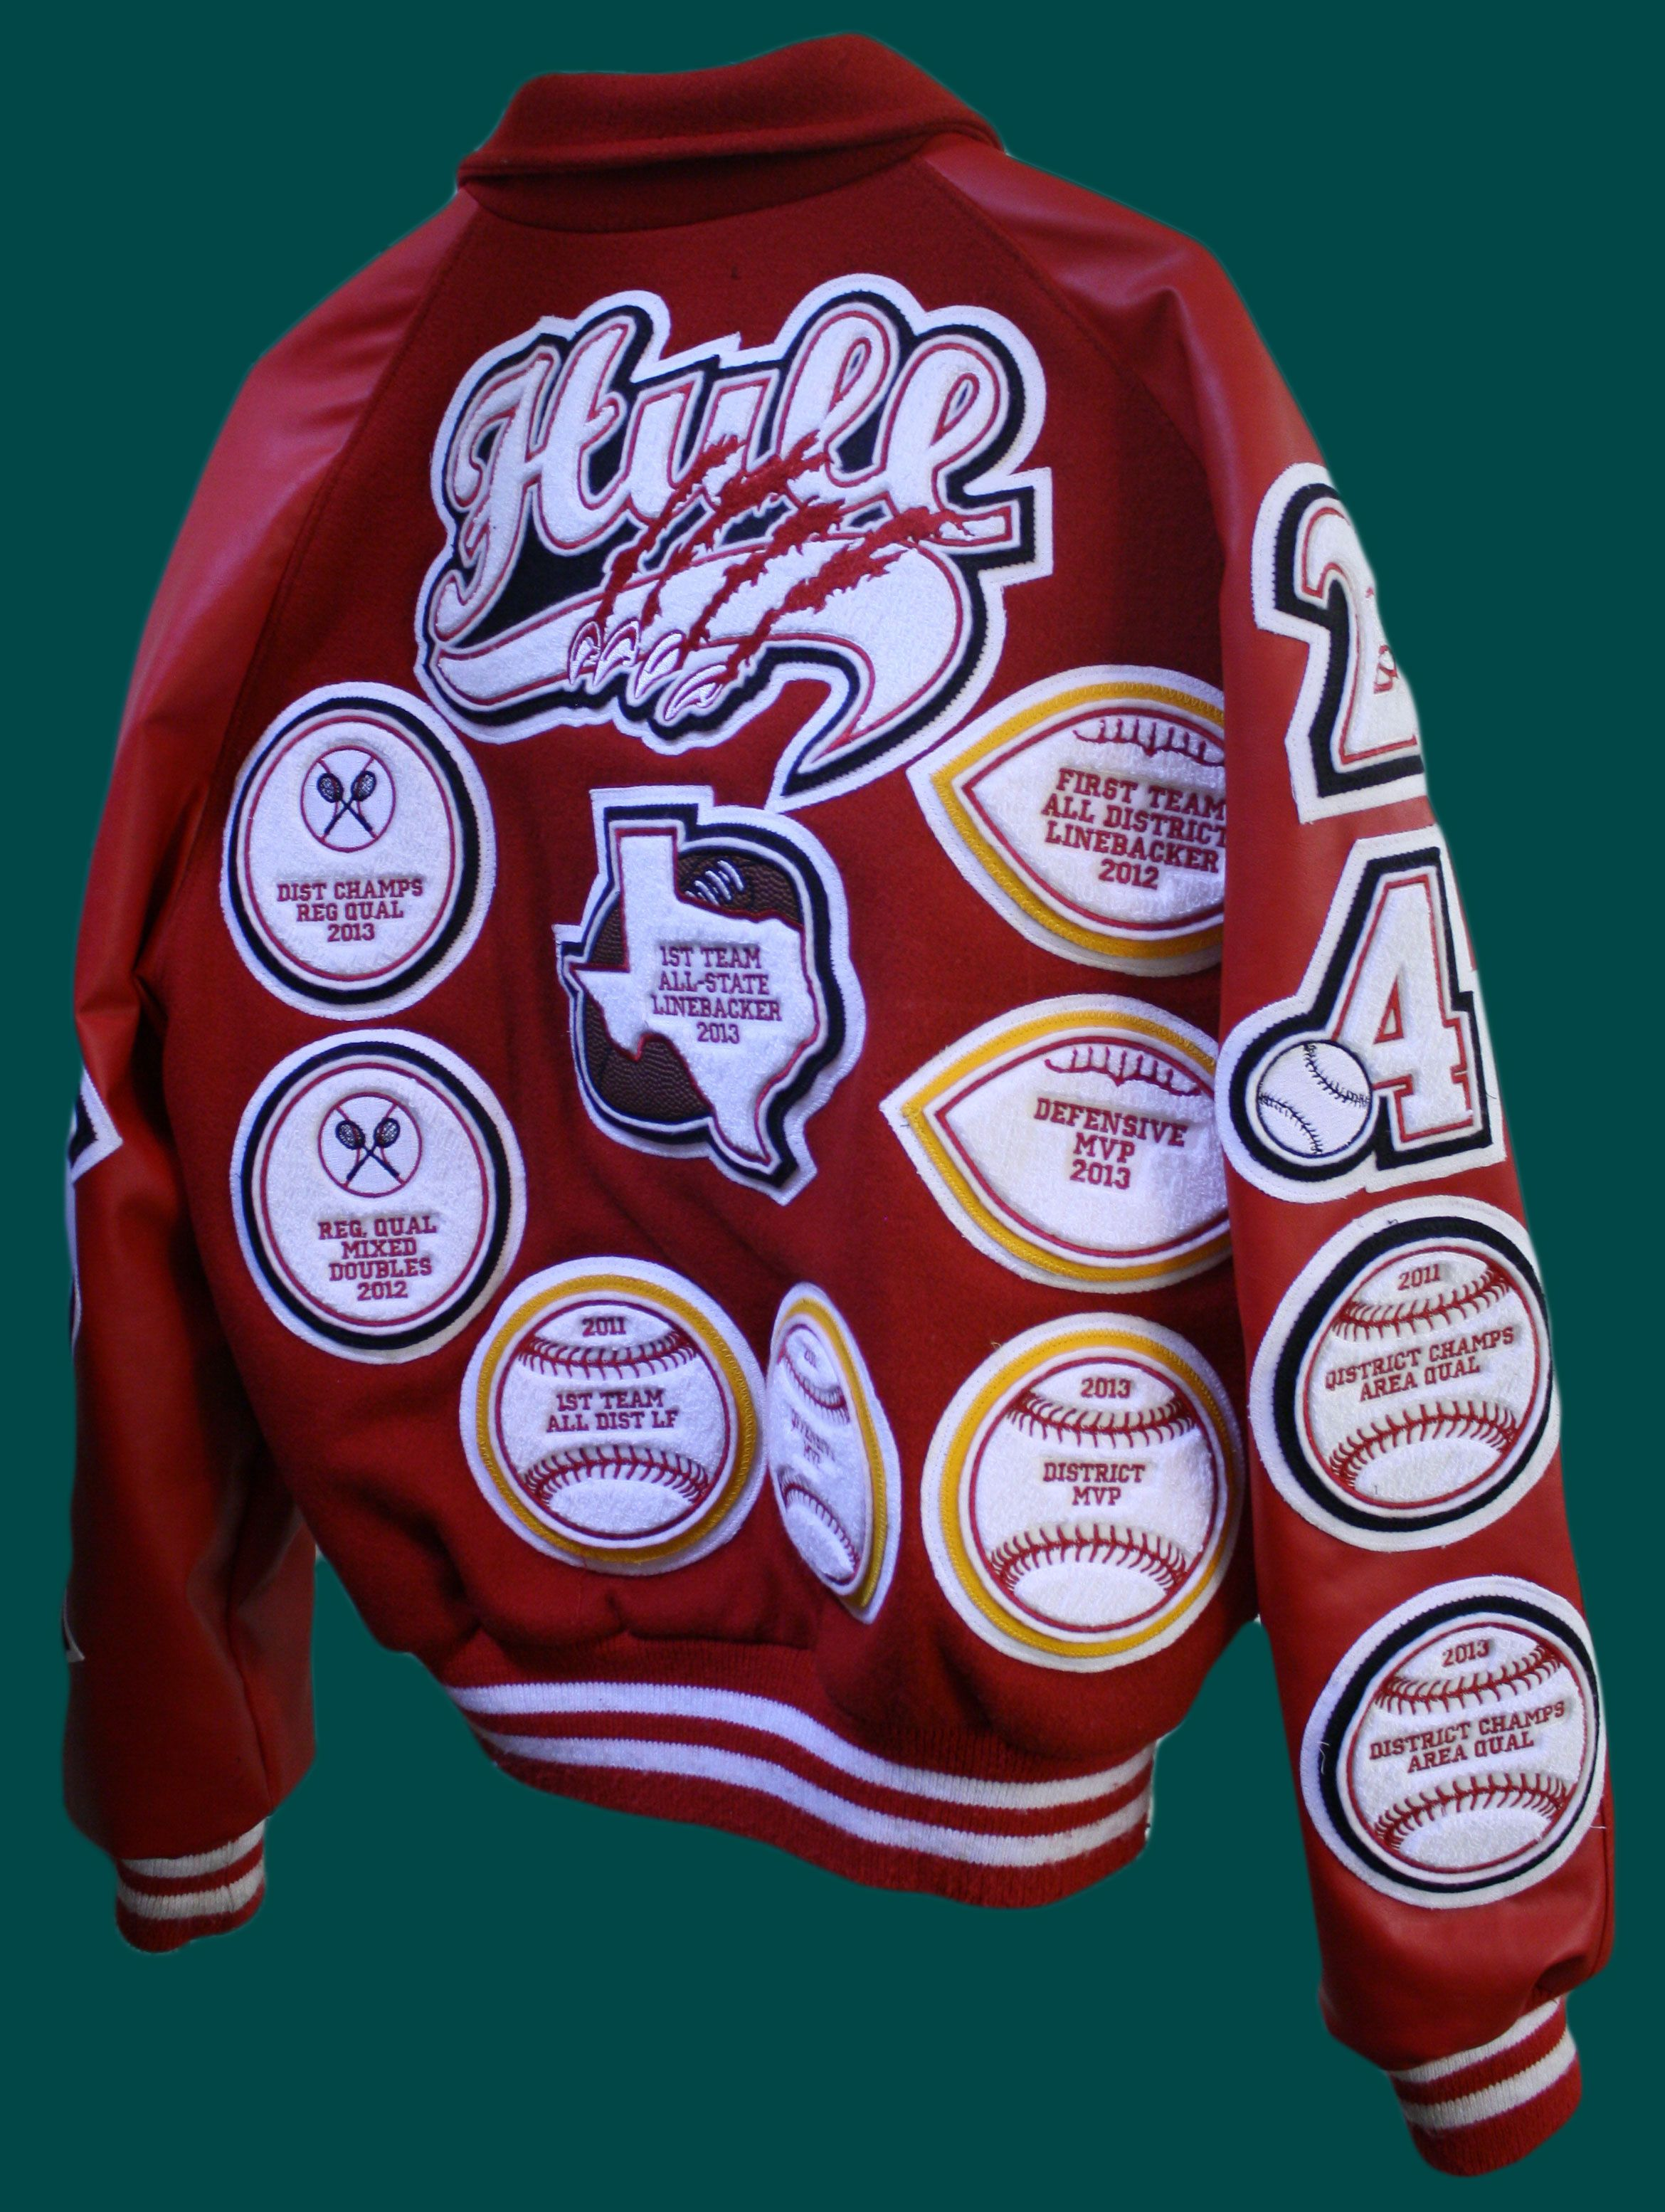 Hall Of Fame Letterman Jacket Package Deal Comes With Leather Sleeve Letterman Jacket And All The Custom Varsity Letterman Jackets Letterman Jacket Lettermen